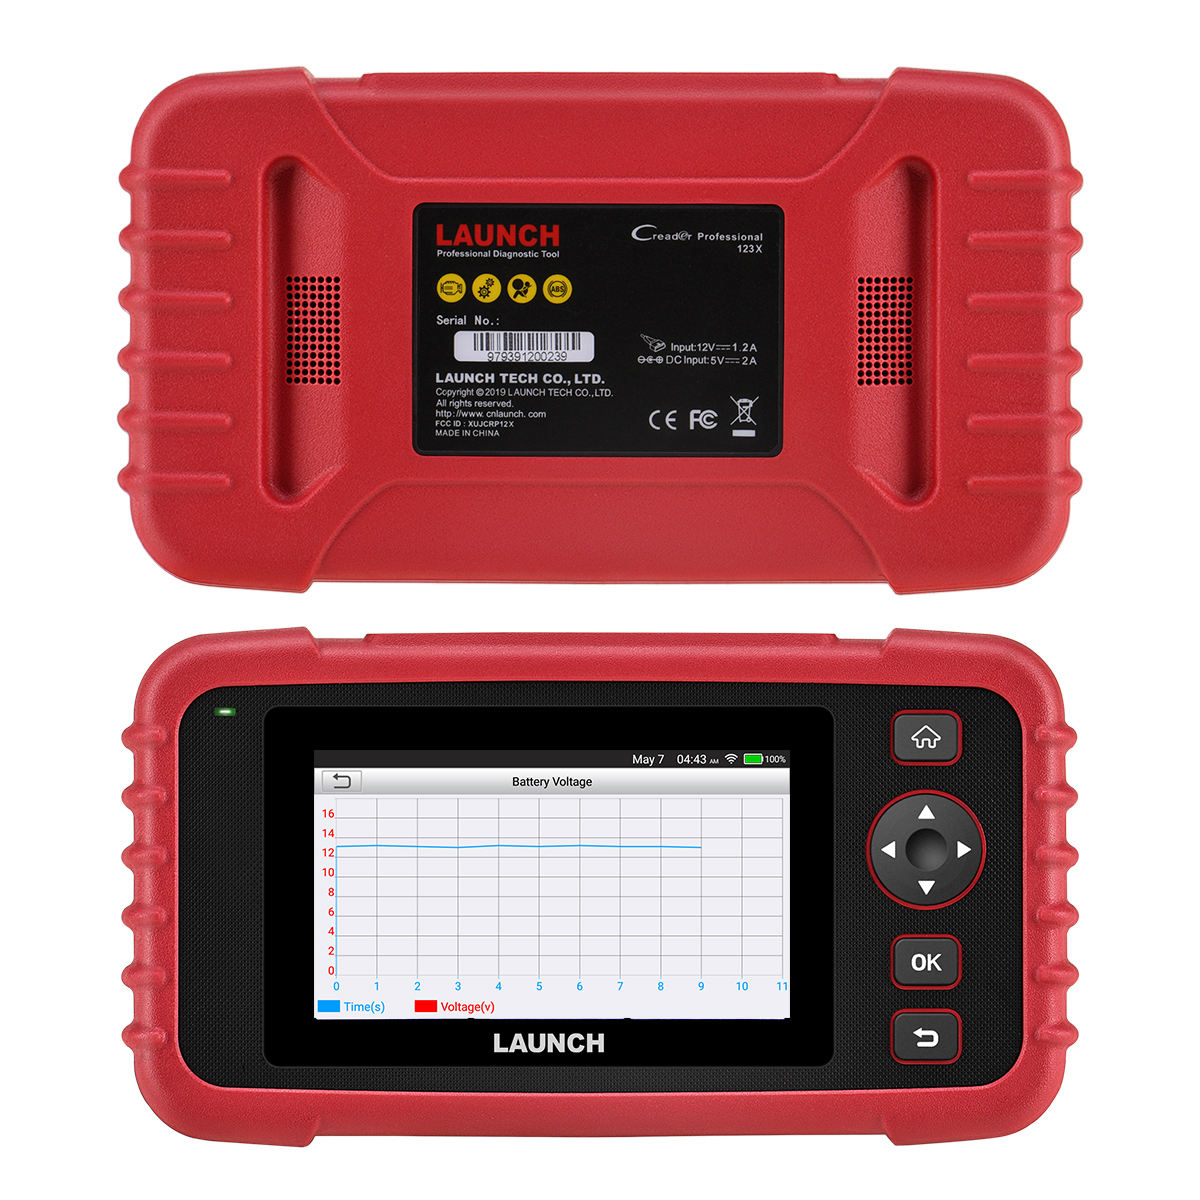 100% Original Launch crp 123x Launch crp 123 launch 123 Diagnostic Machine